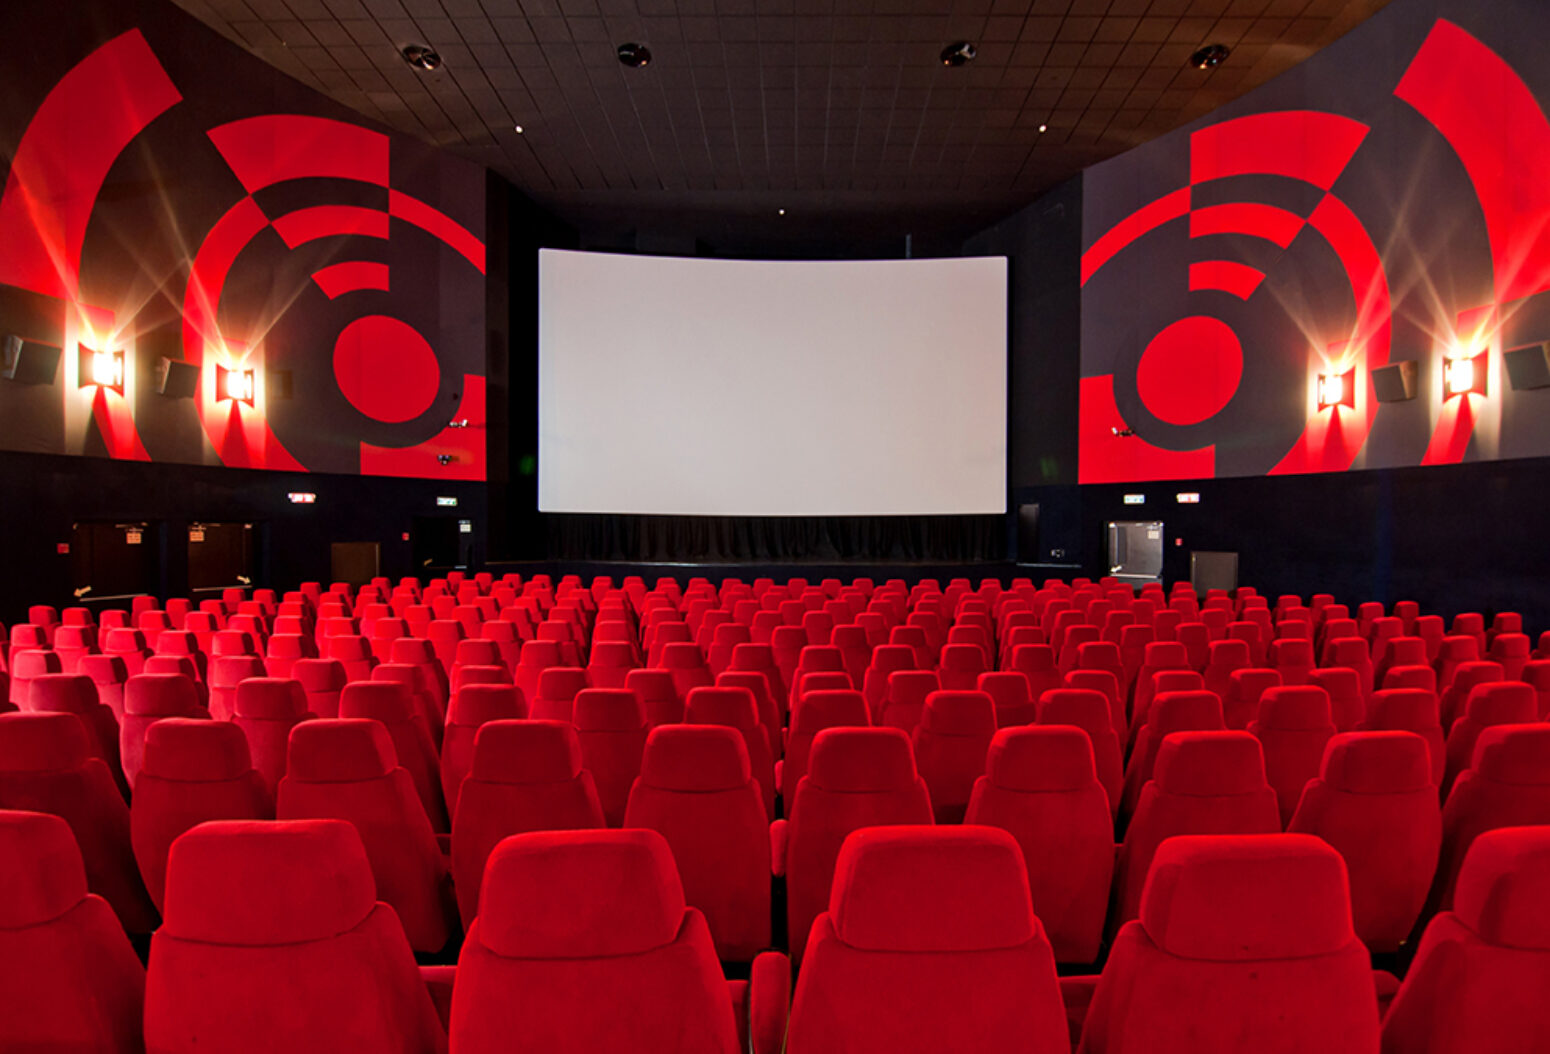 See FabriTRAK systems in action in this movie auditorium.